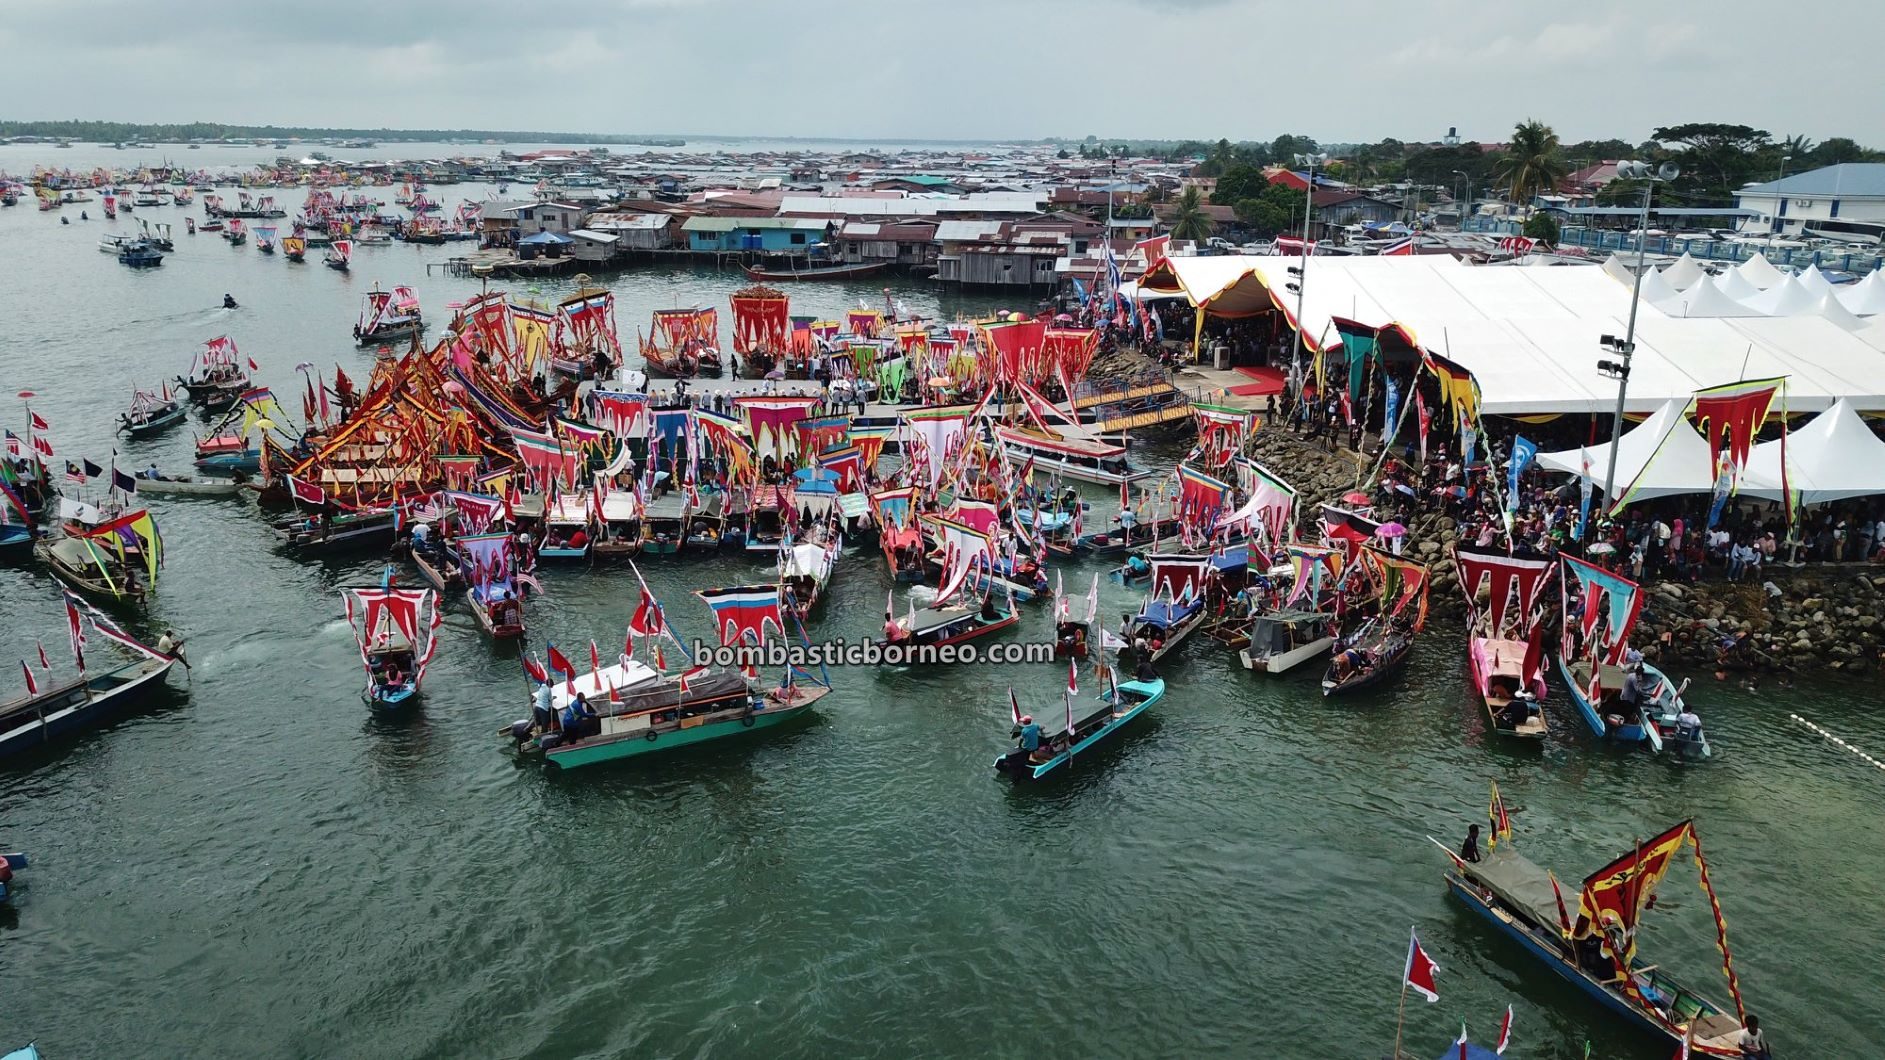 Water Festival, parade, Sailing Boat, destination, Sea Gypsies, Suku Bajau Laut, culture, Malaysia, Tourism, travel guide, Trans Border, Borneo, 跨境婆罗洲游踪, 马来西亚彩船节, 沙巴仙本那旅游